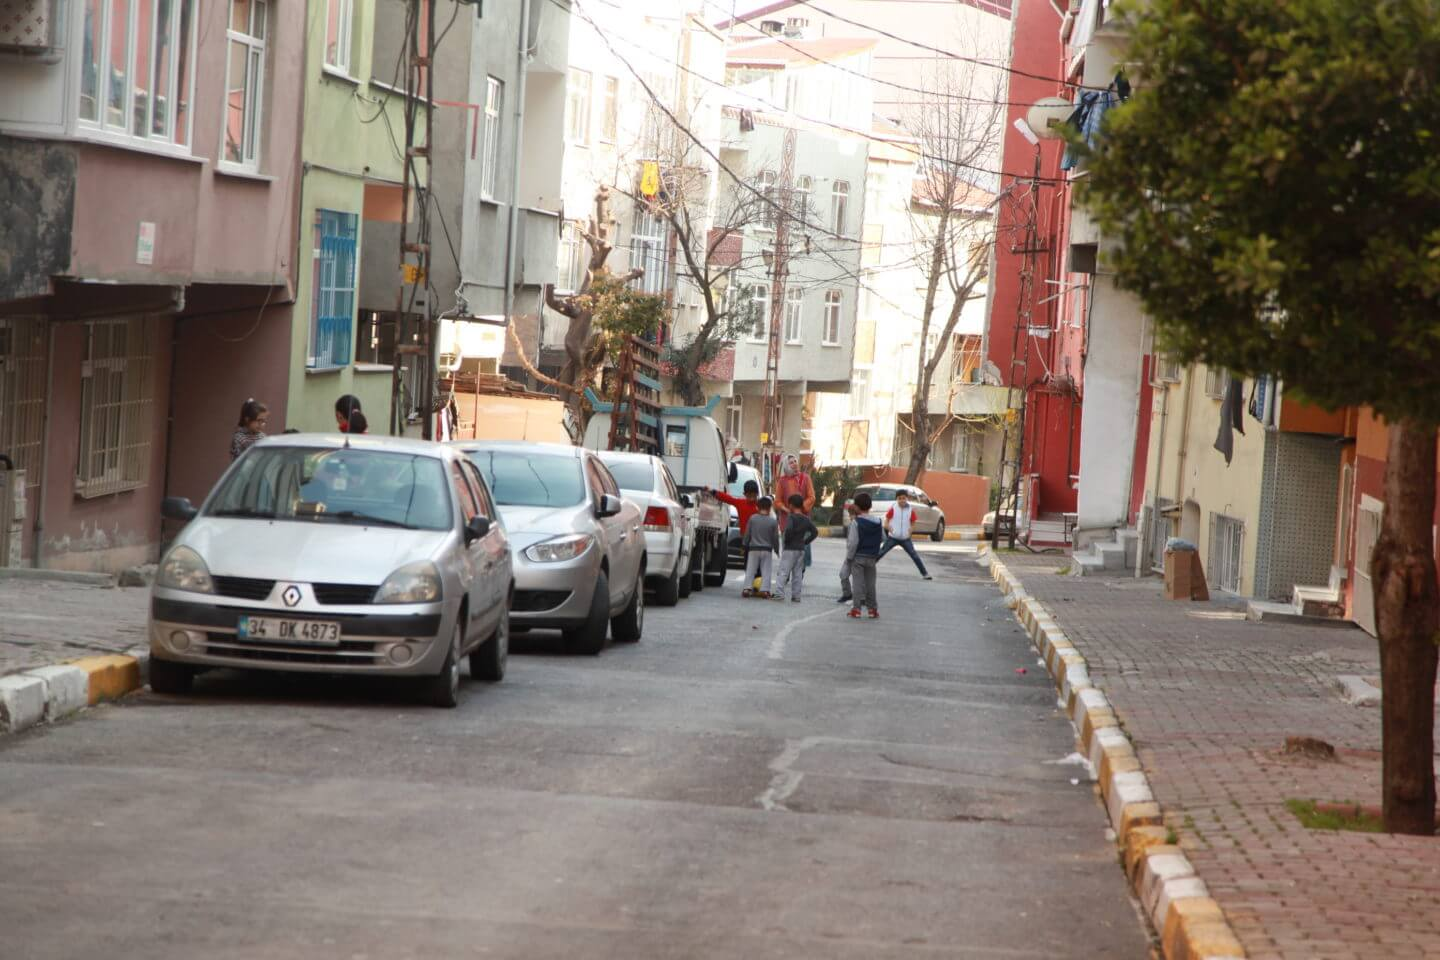 Children playing in area called 'Little Syria' in Istanbul